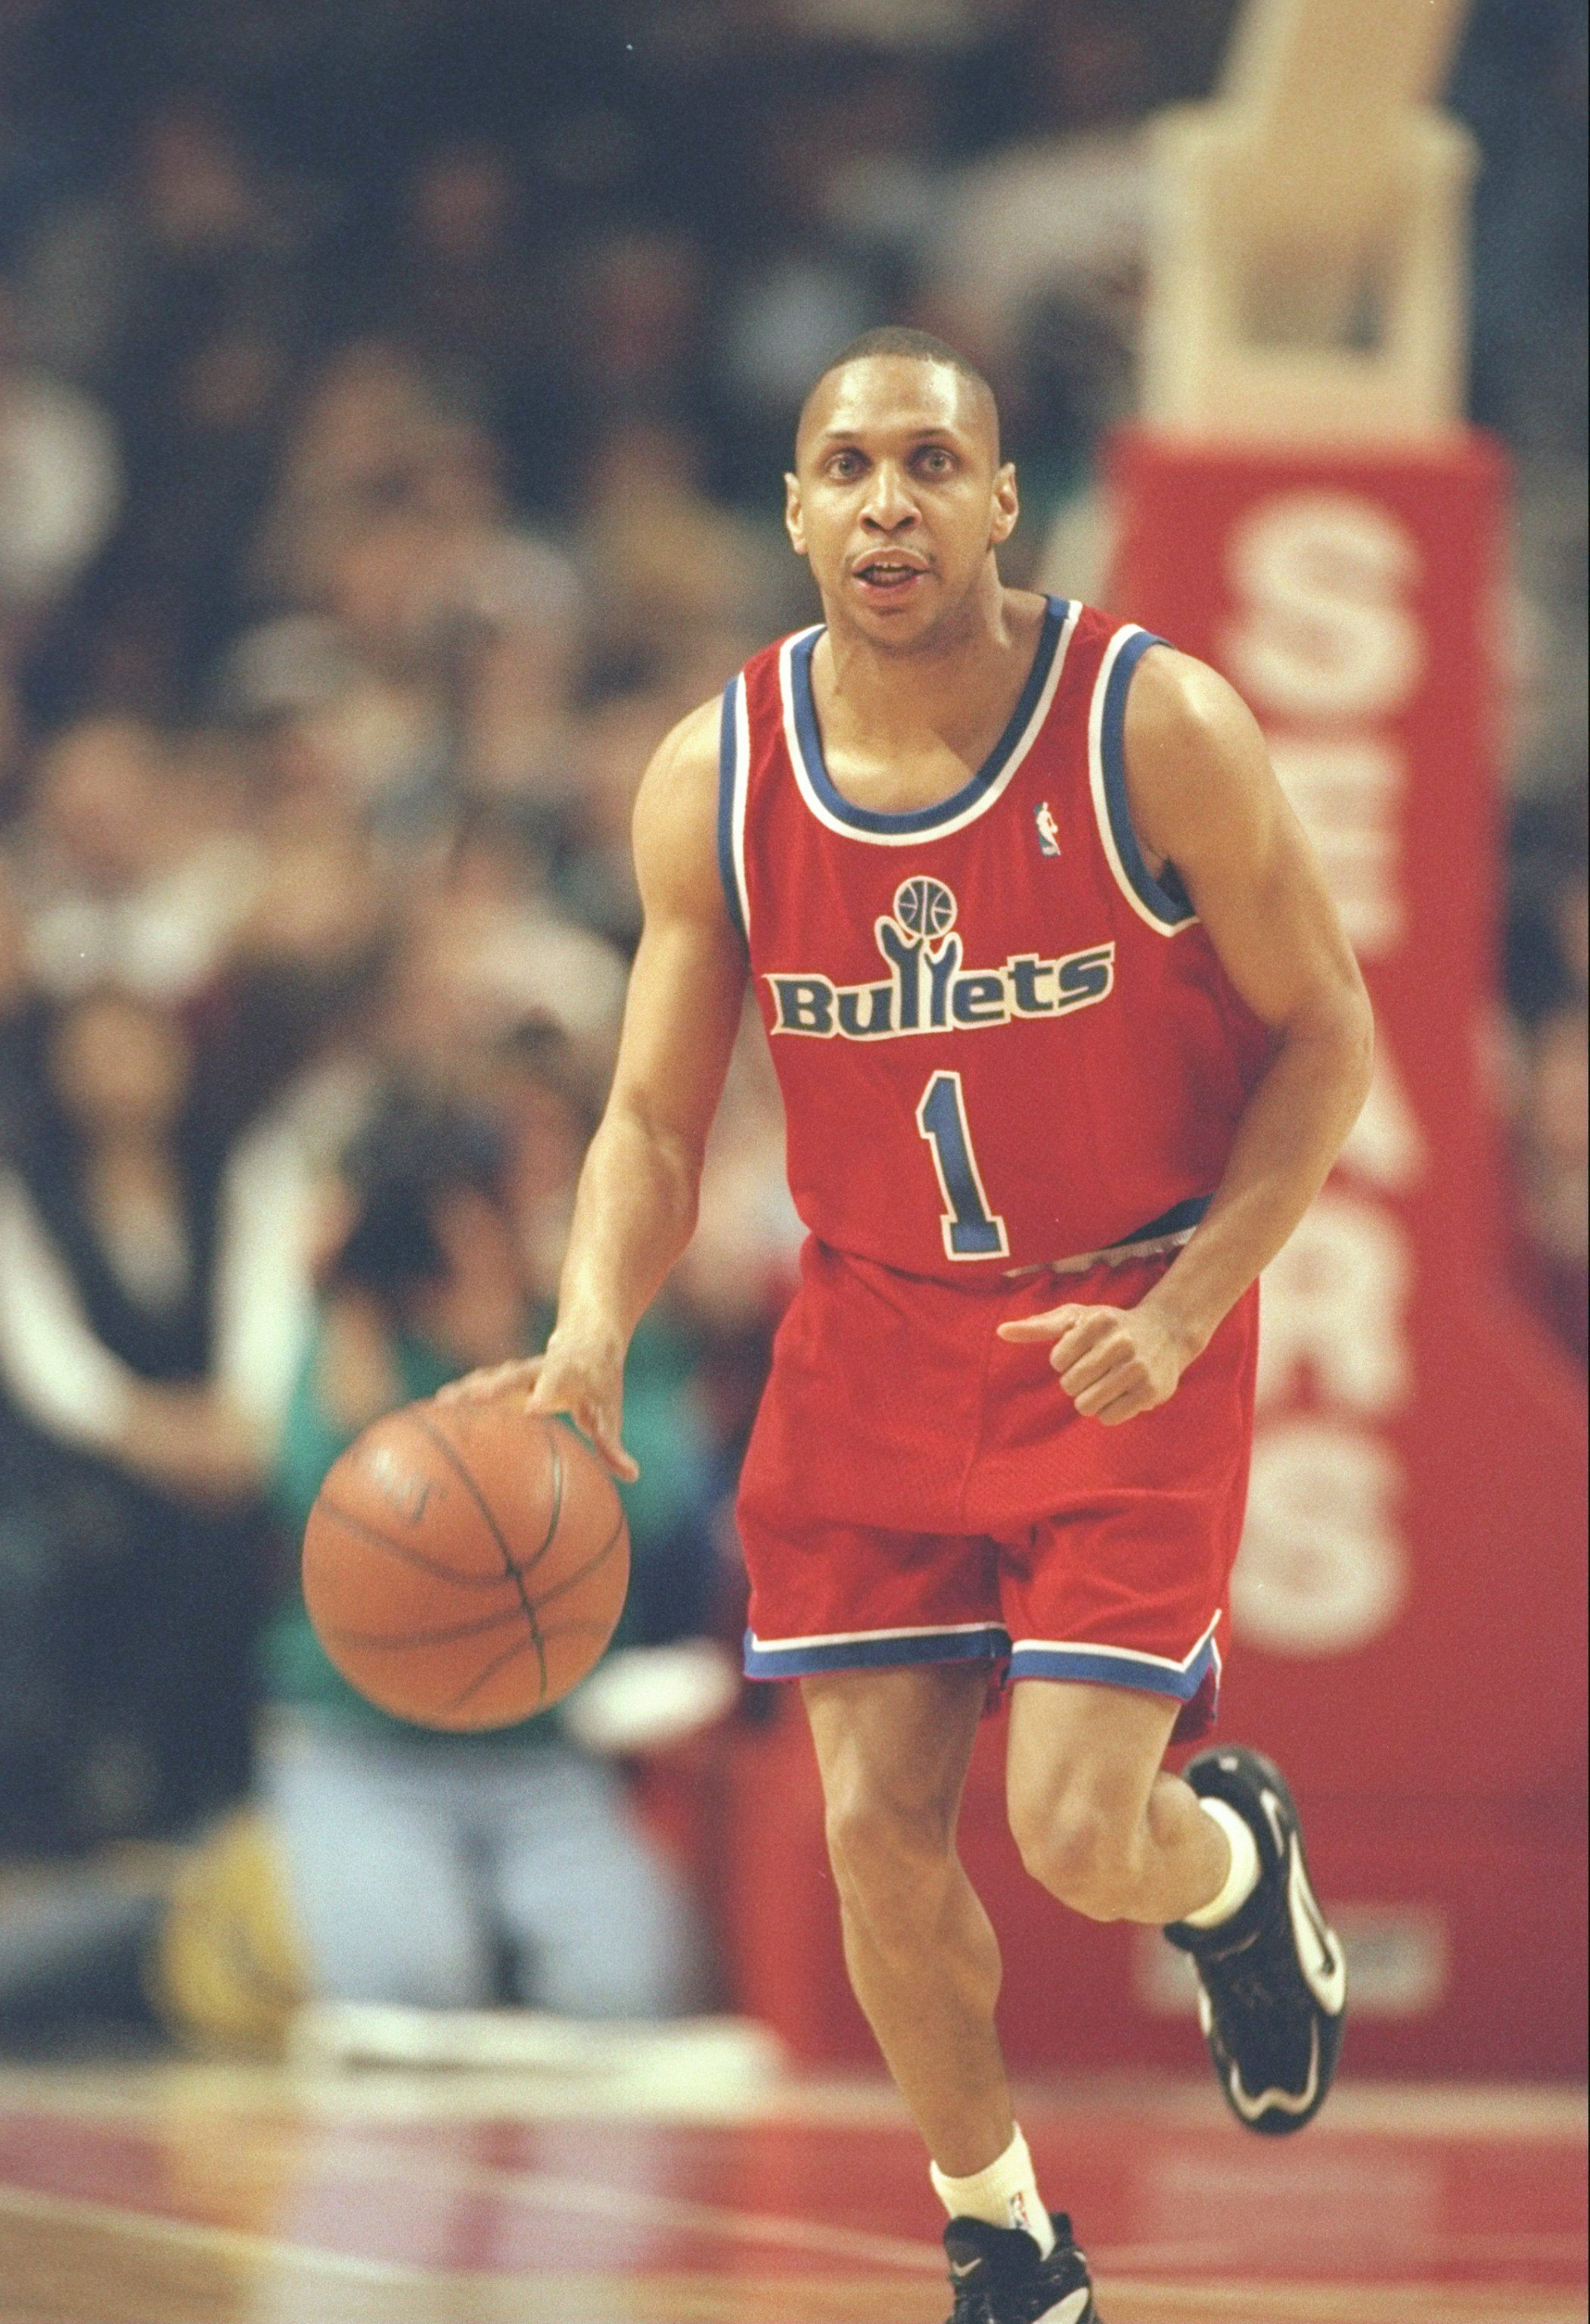 Guard Greg Grant of the Washington Bullets moves the ball down the court